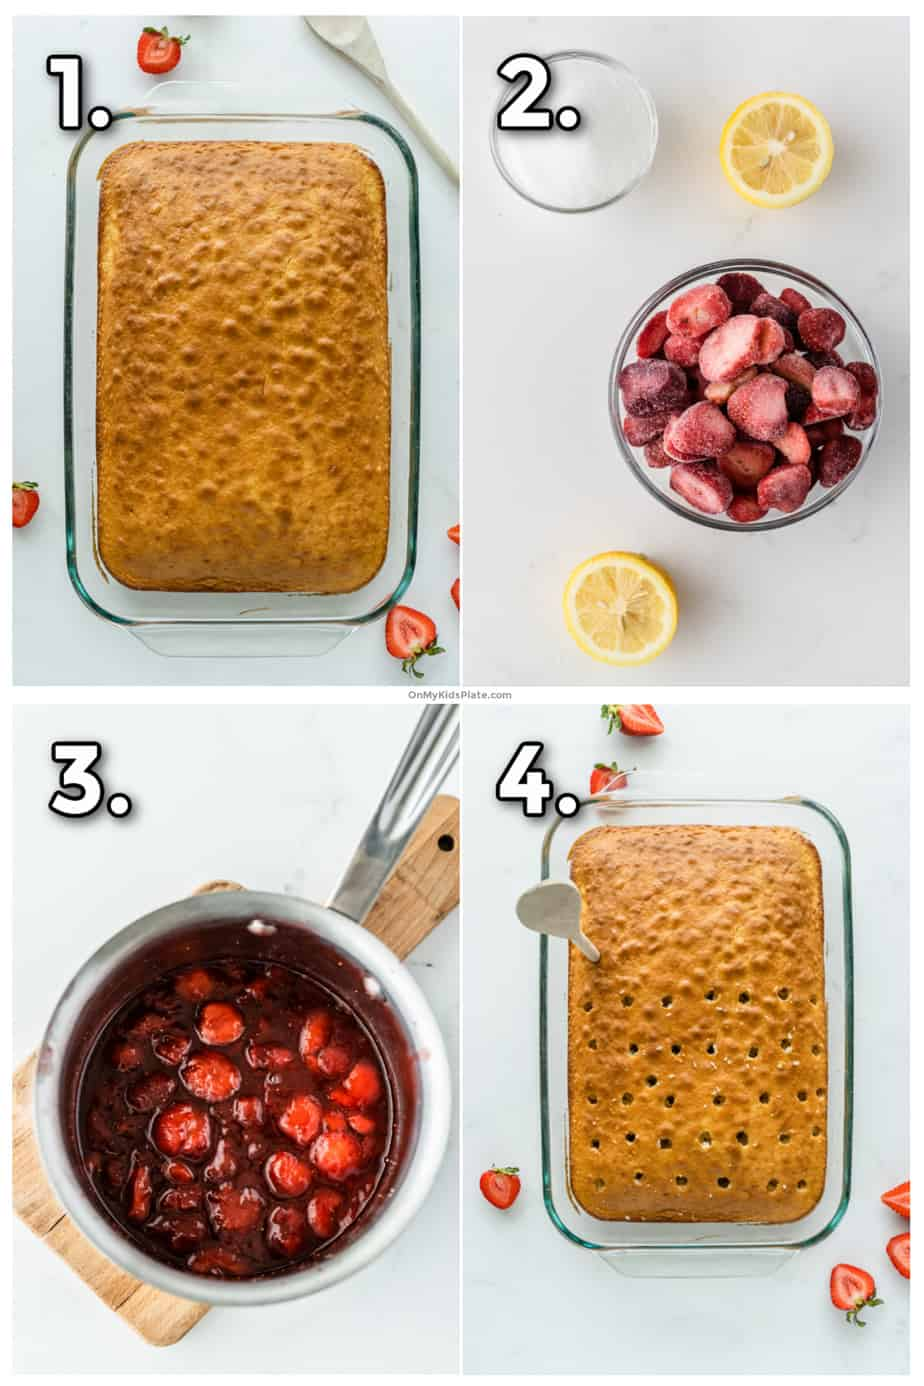 Showing steps of how to make a strawberry poke cake. First baking cake, then making strawberry sauce and poking holes in cake